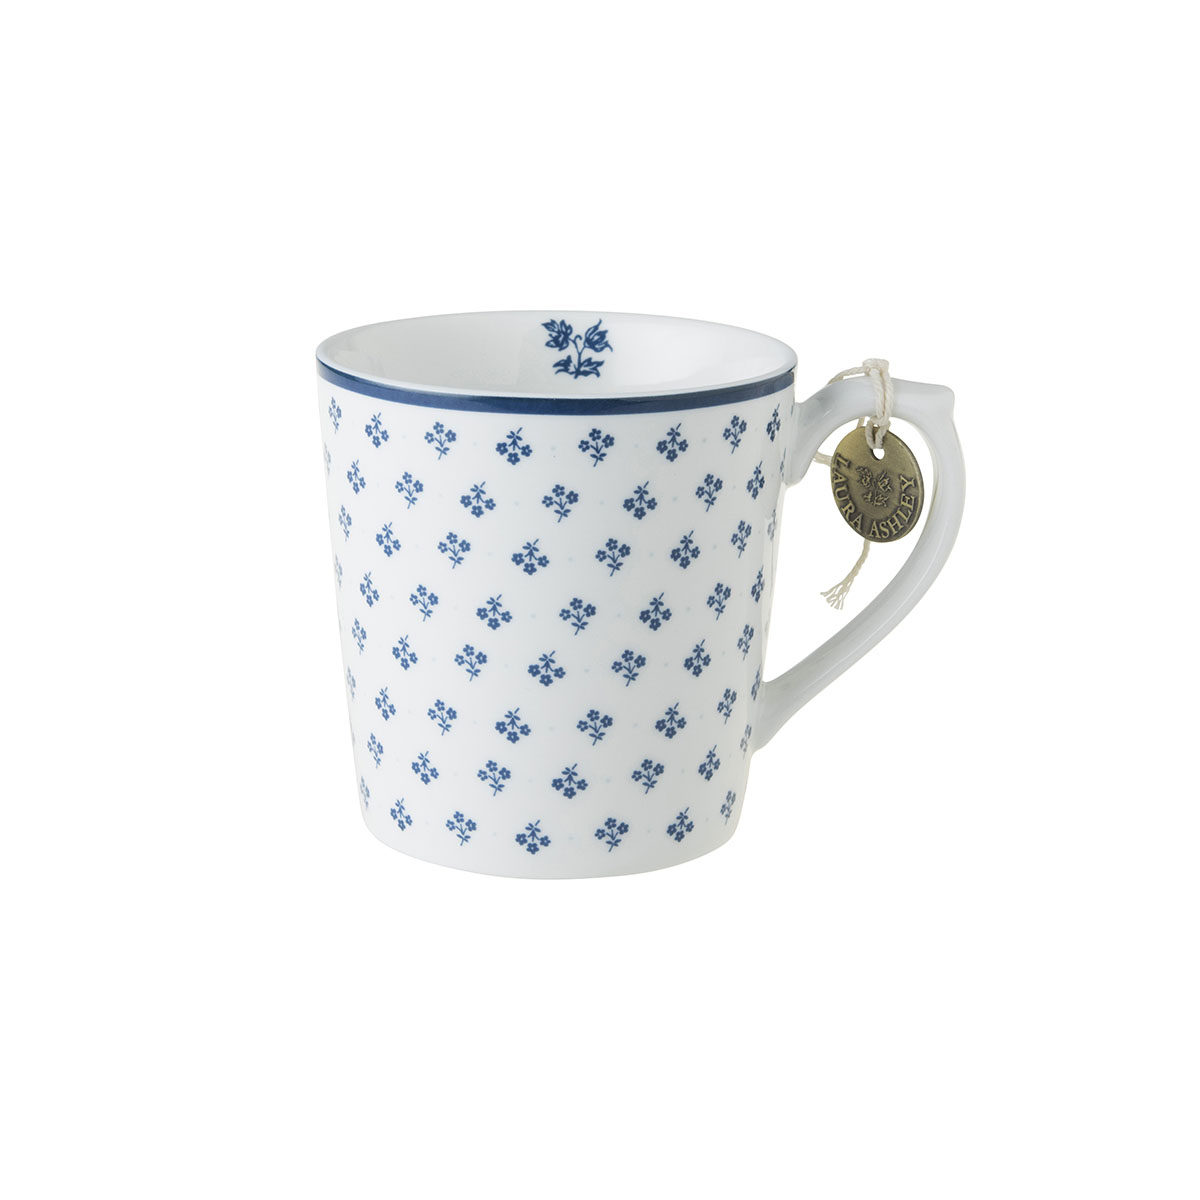 Laura Ashley Beker Petit Fleur 35 cl